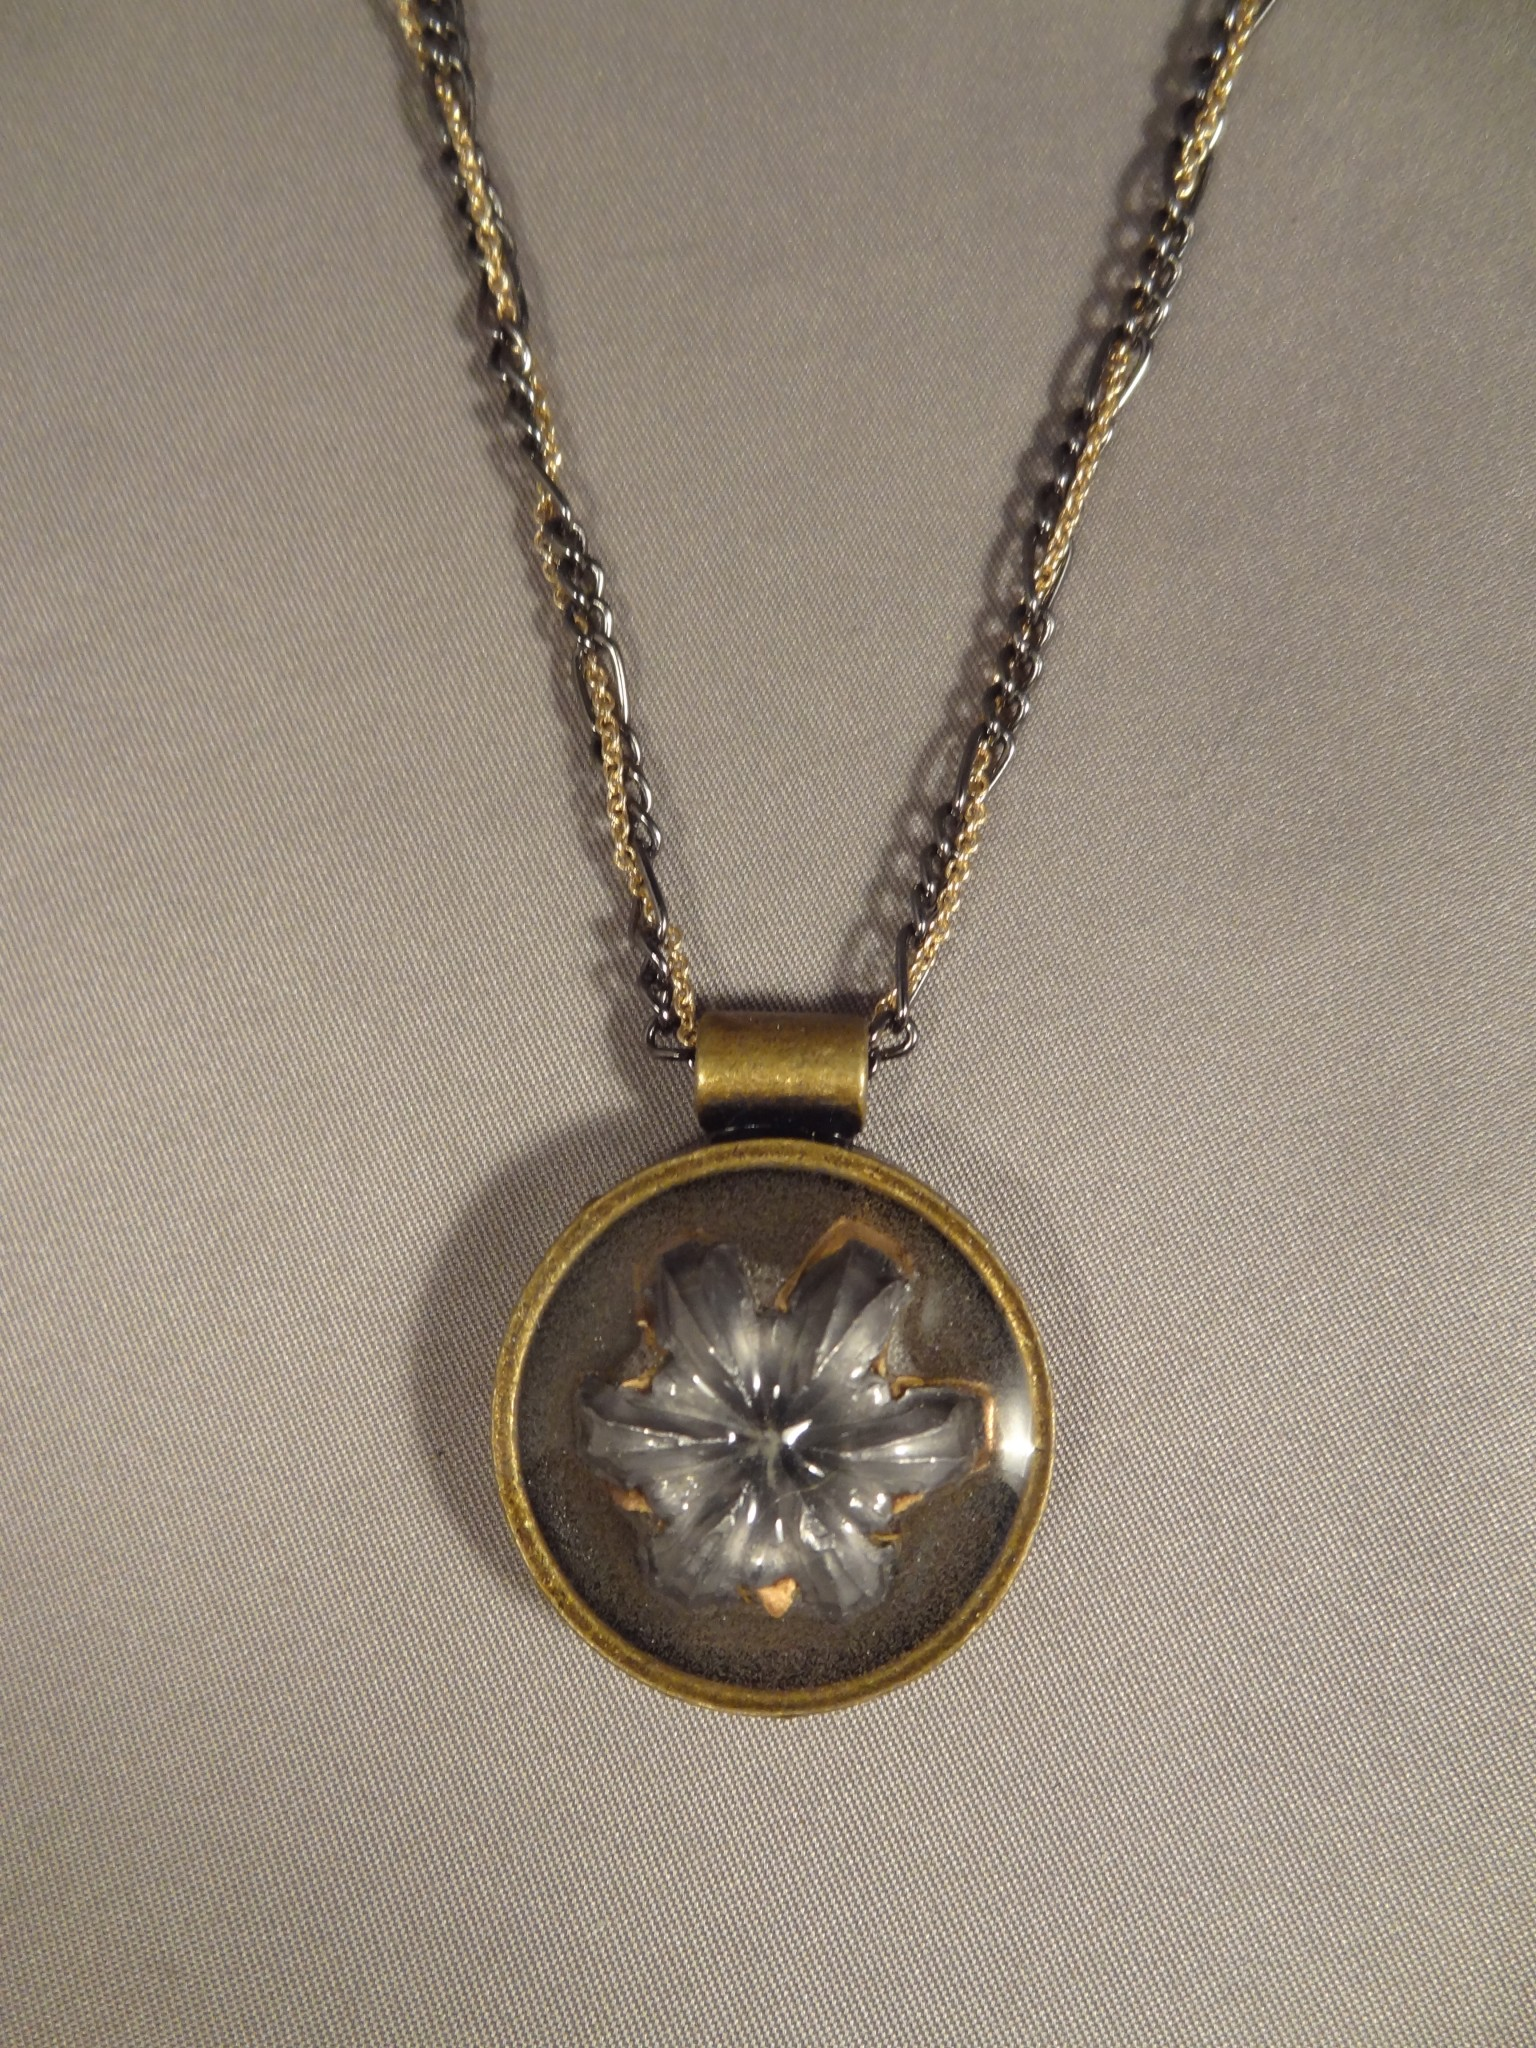 Expanded Hollow Point Pendant – .20 Caliber Bullet in Round Base ...